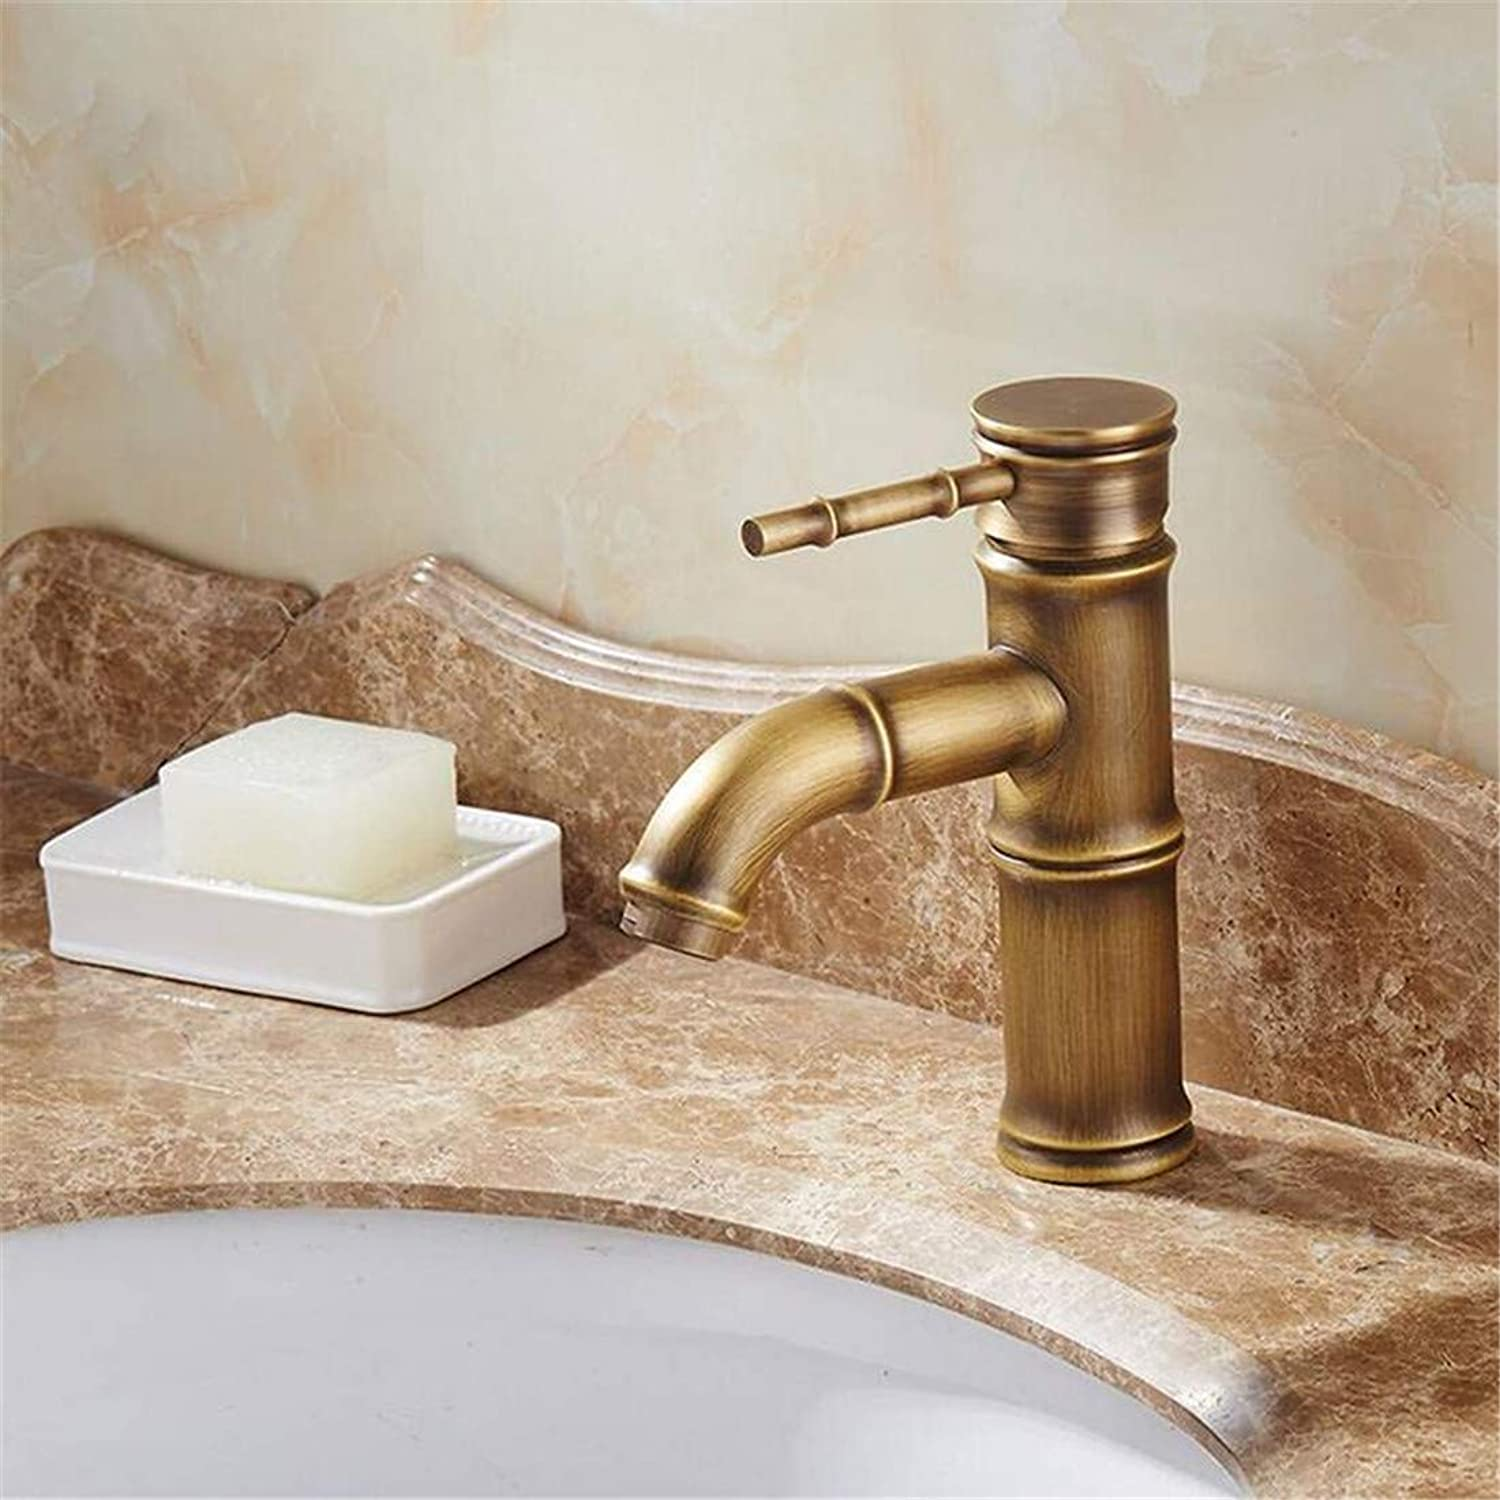 Kitchen Brass Bathroom Retro Faucet Single Handle Bamboo Water Tap Antique Bronze Finish Brass Basin Sink Faucet